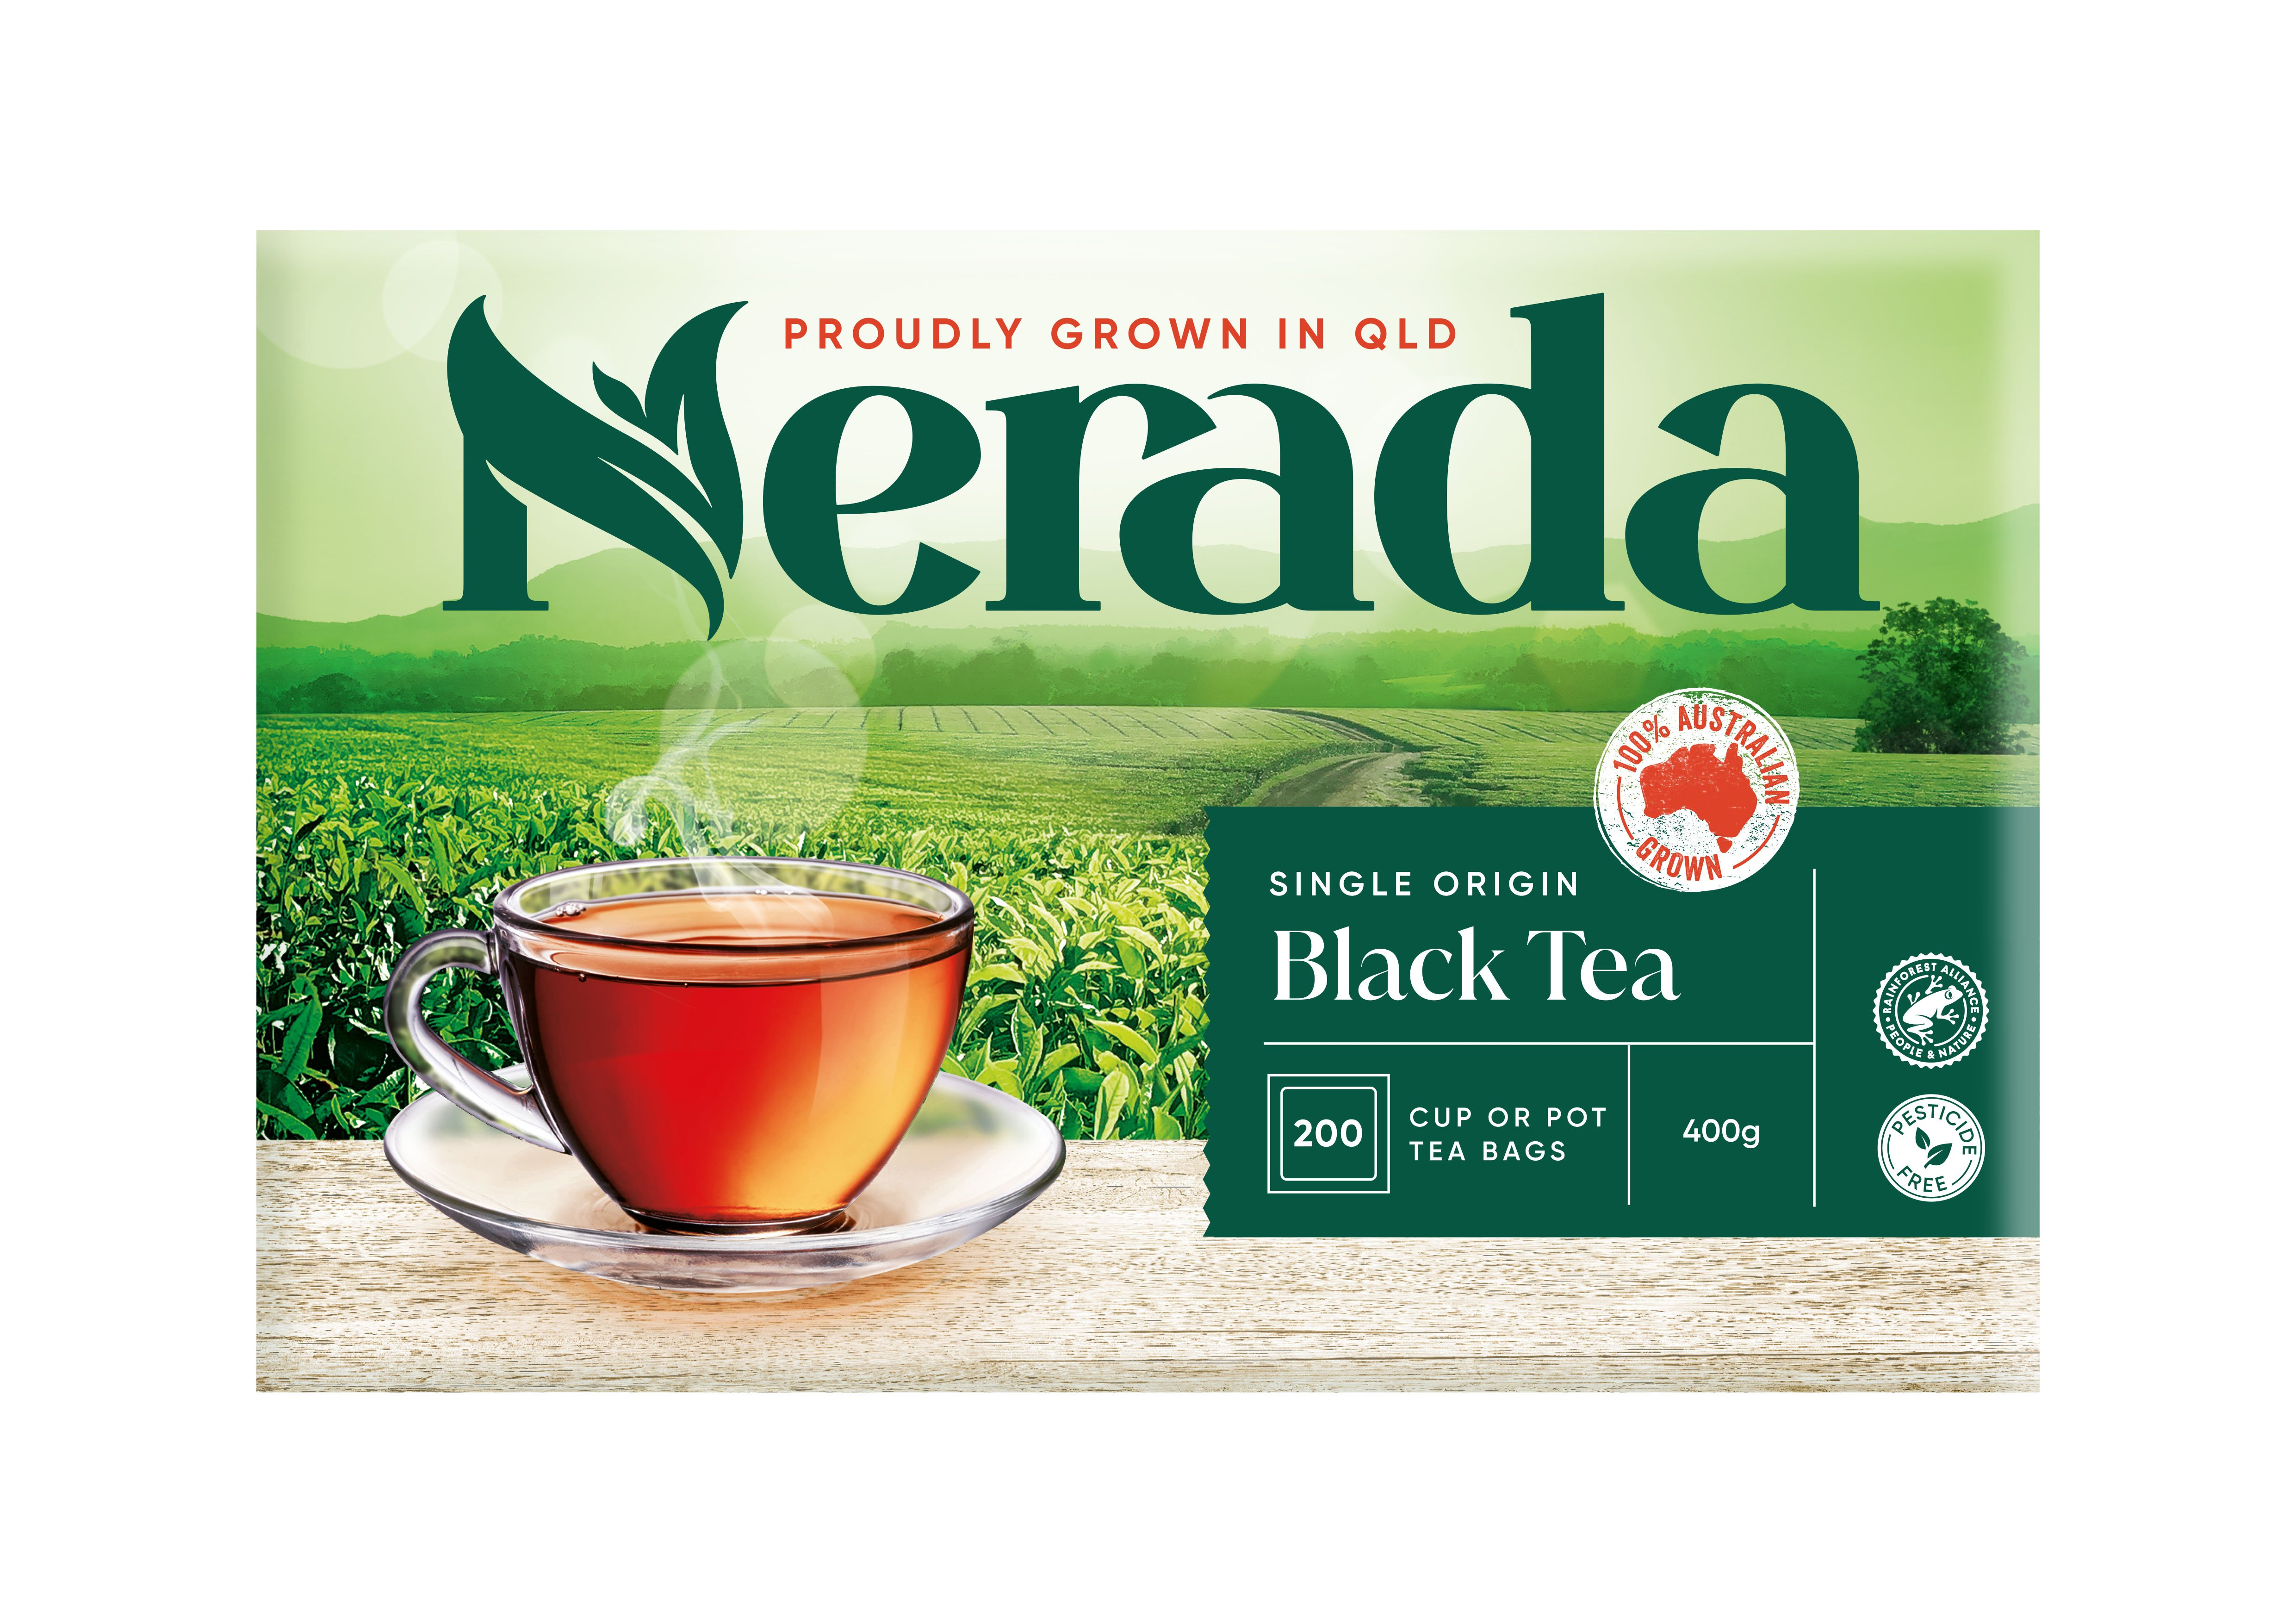 Nerada Cup or Pot Teabags 400g 4x200